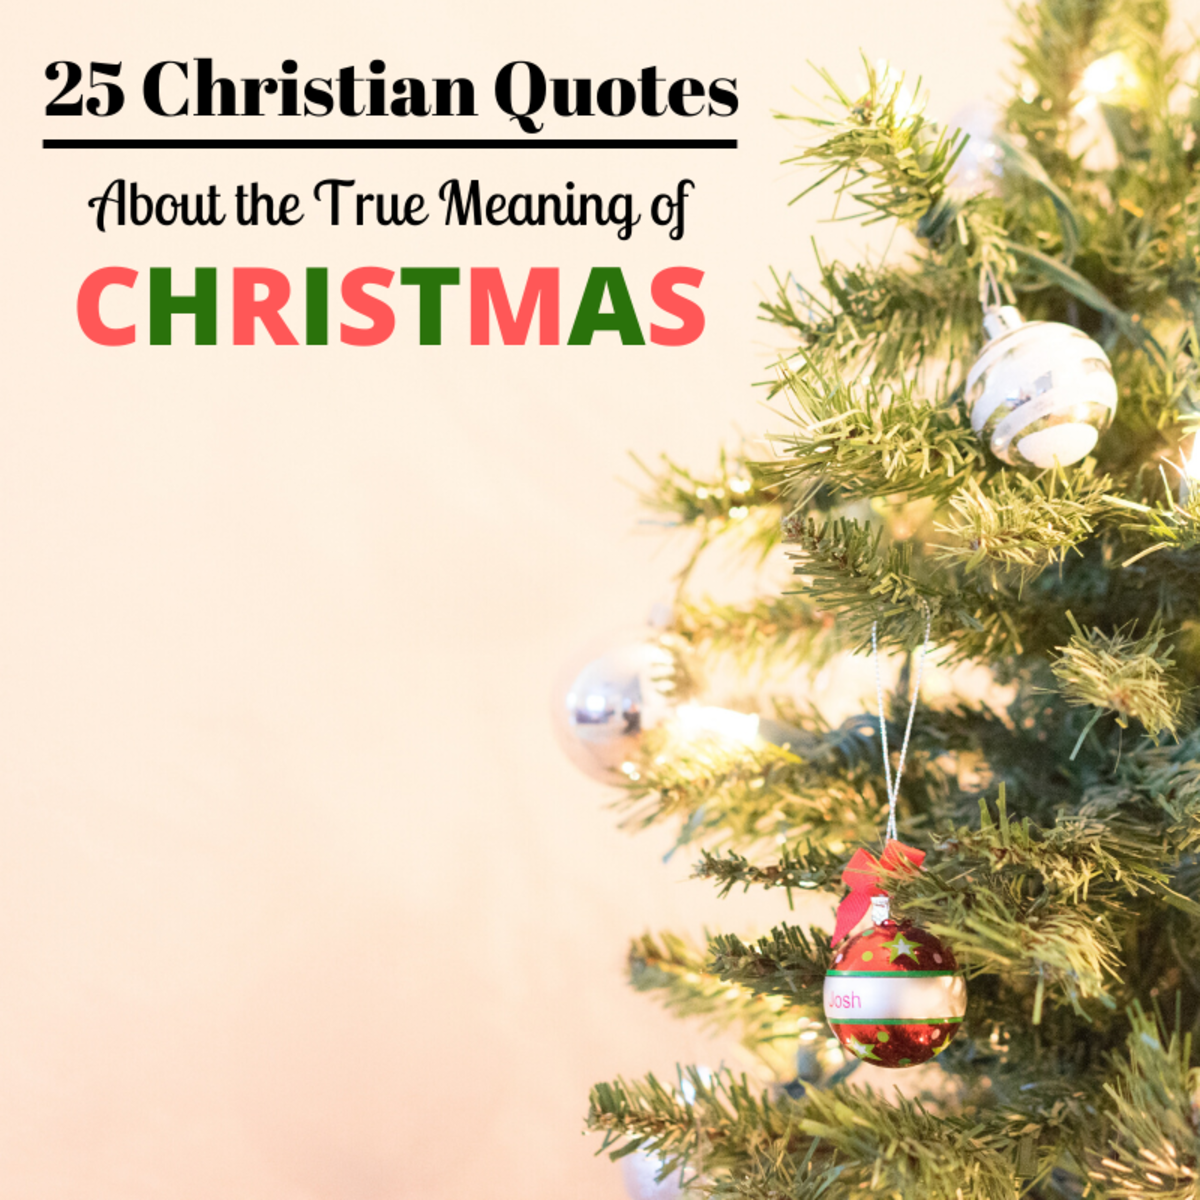 25 Christian Quotes About Christmas and